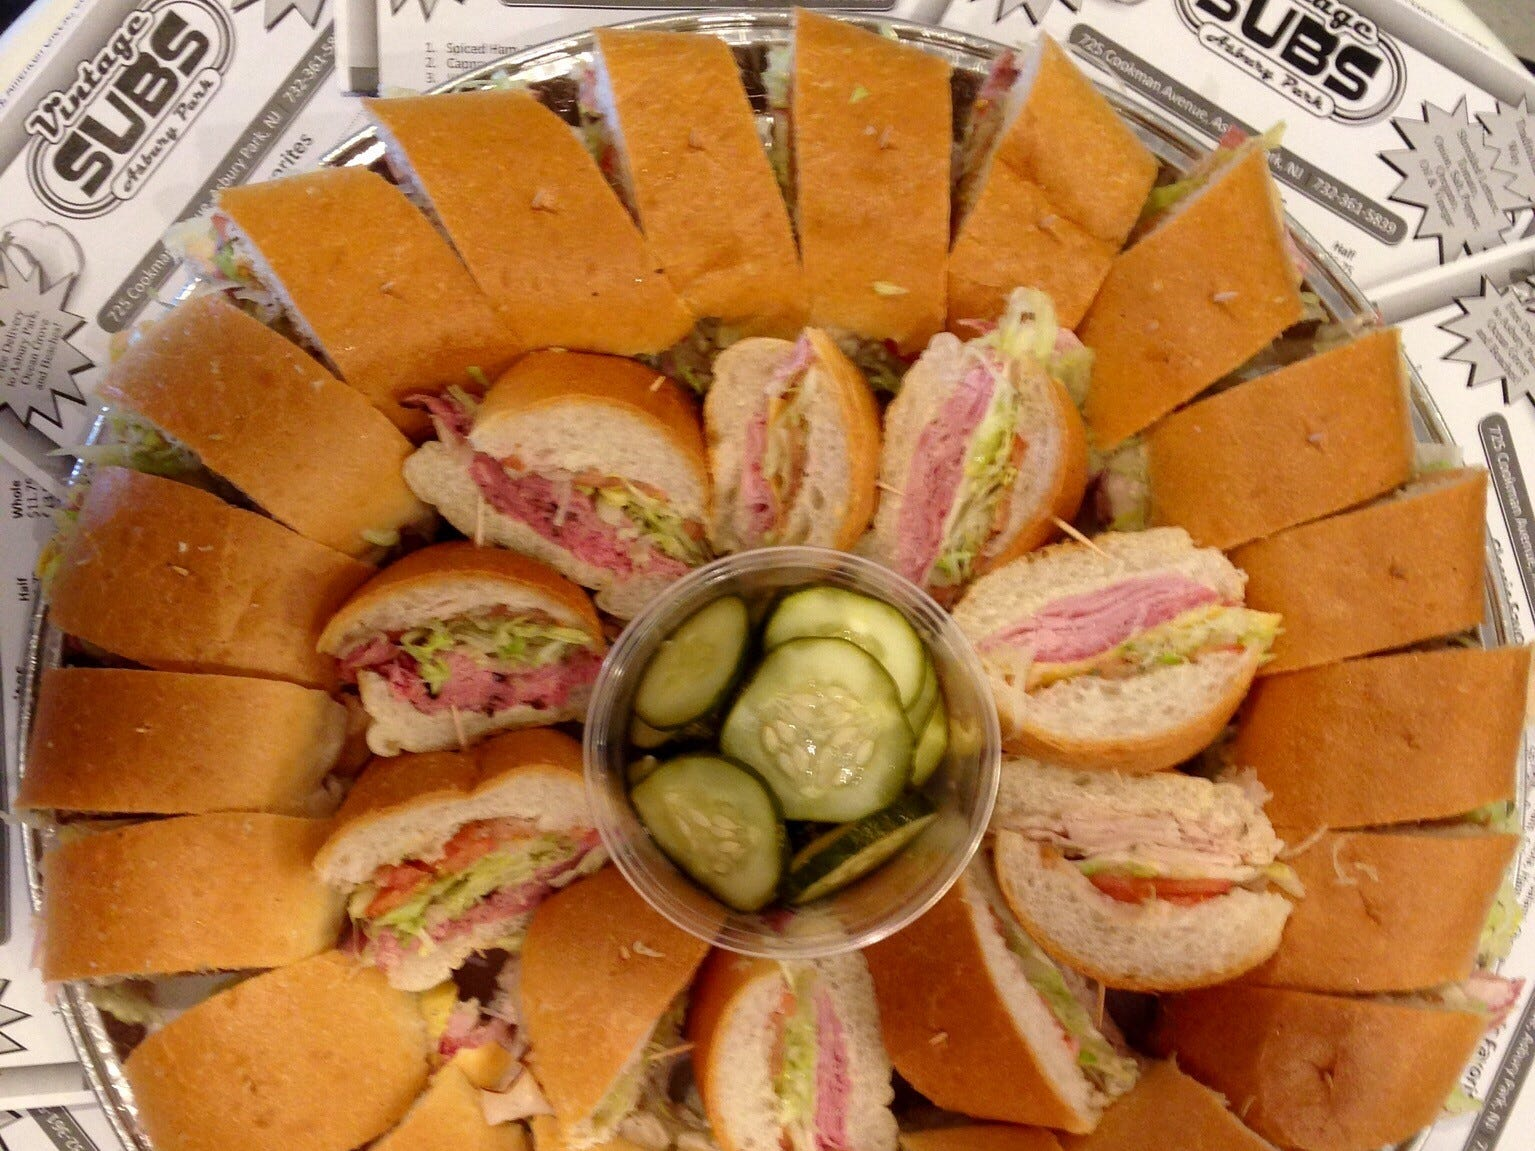 A sub platter from Vintage Subs in Asbury Park.